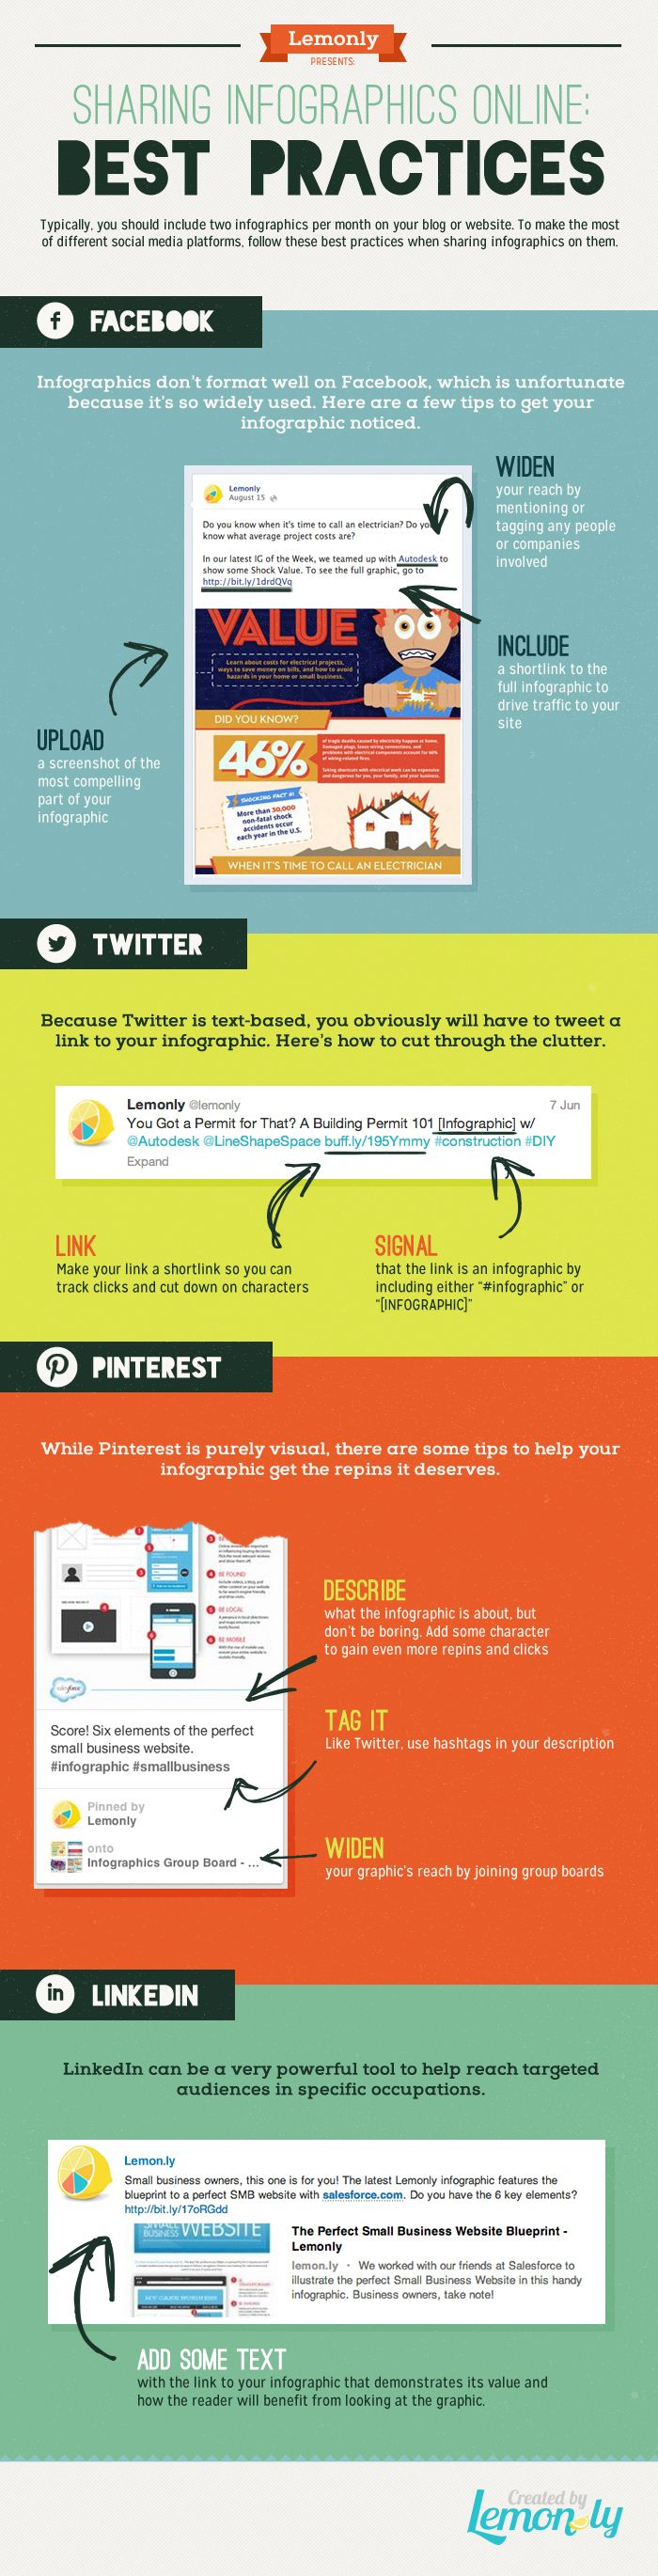 How To Share Infographics On Social Media Best Practices Infographic Socialmedia I Social Media Infographic Infographic Marketing Social Media Strategies